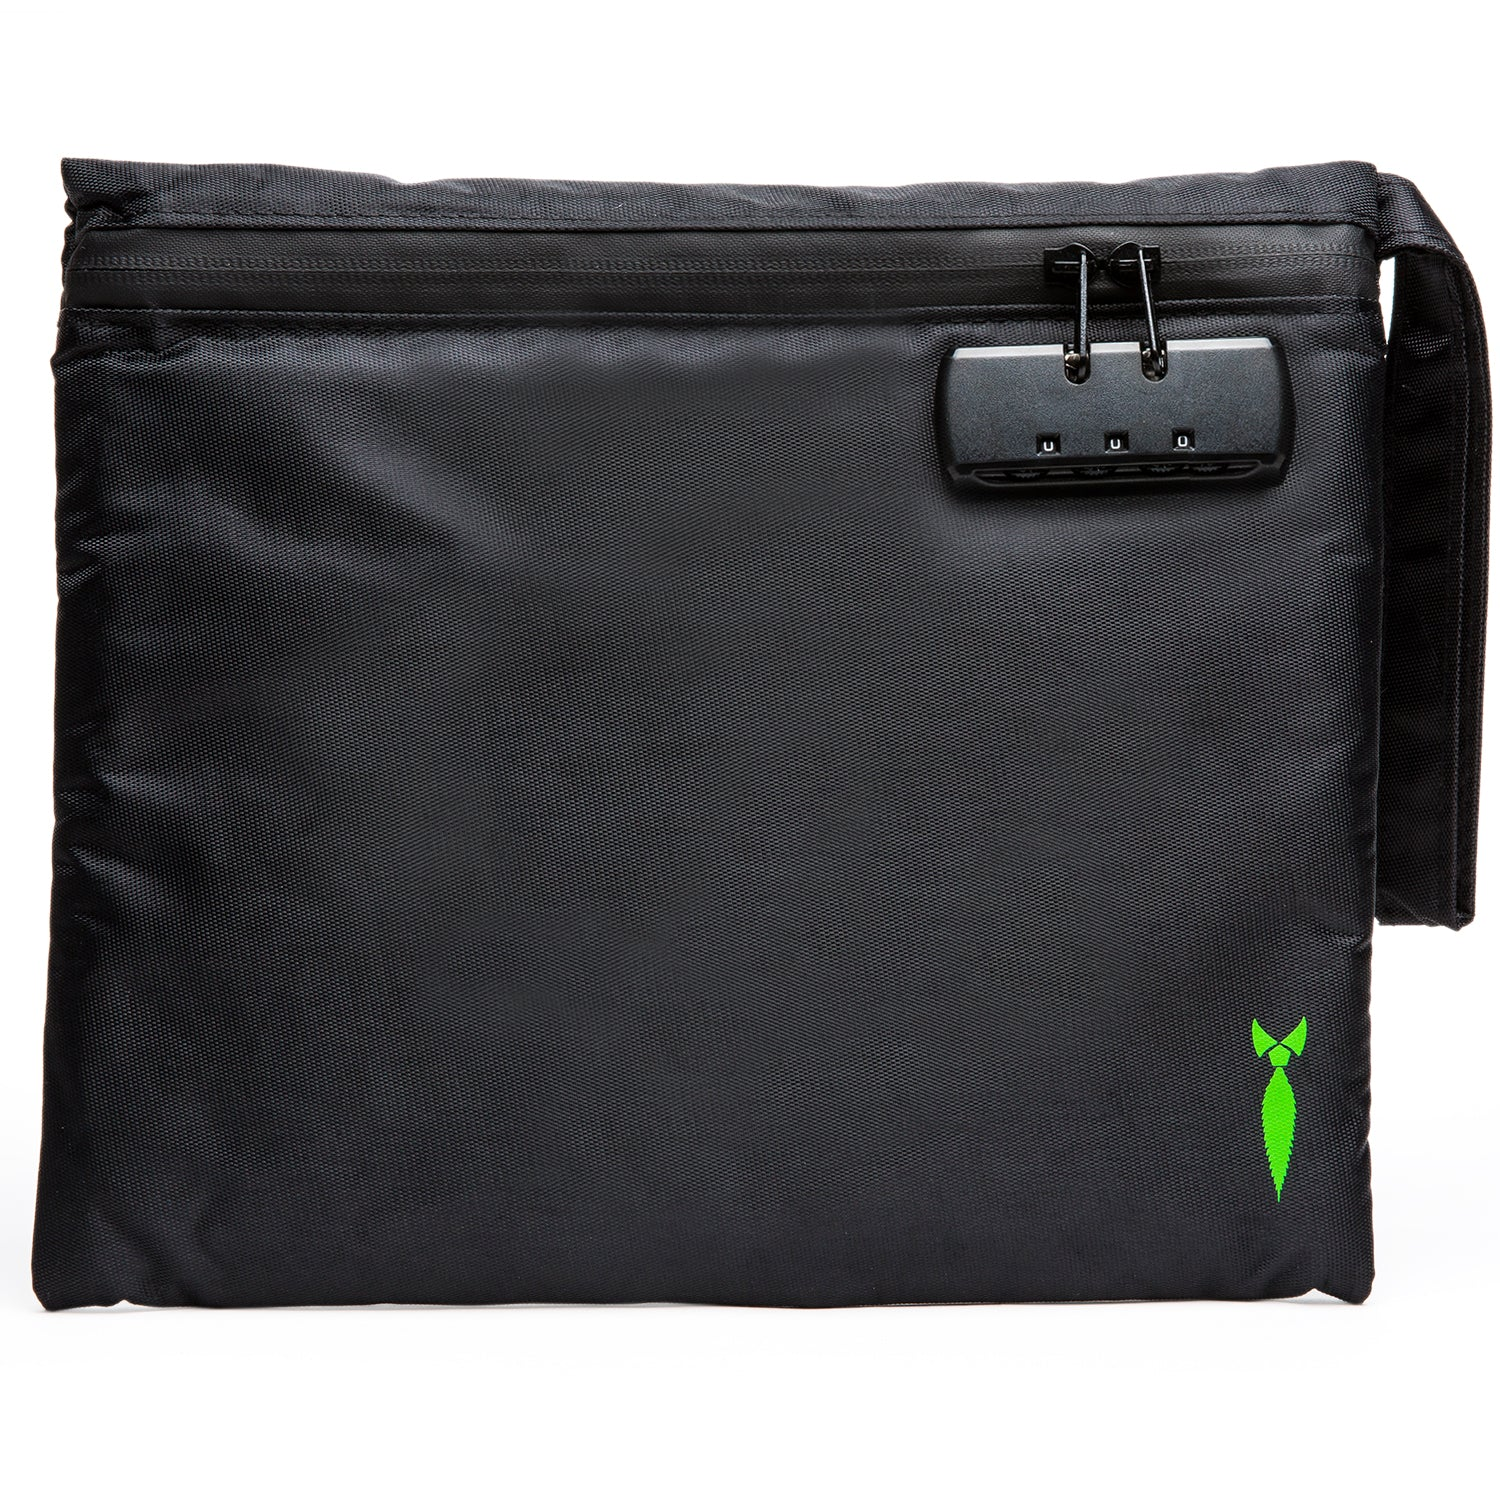 Smell Proof Bag 11 x 9 w/ Lock